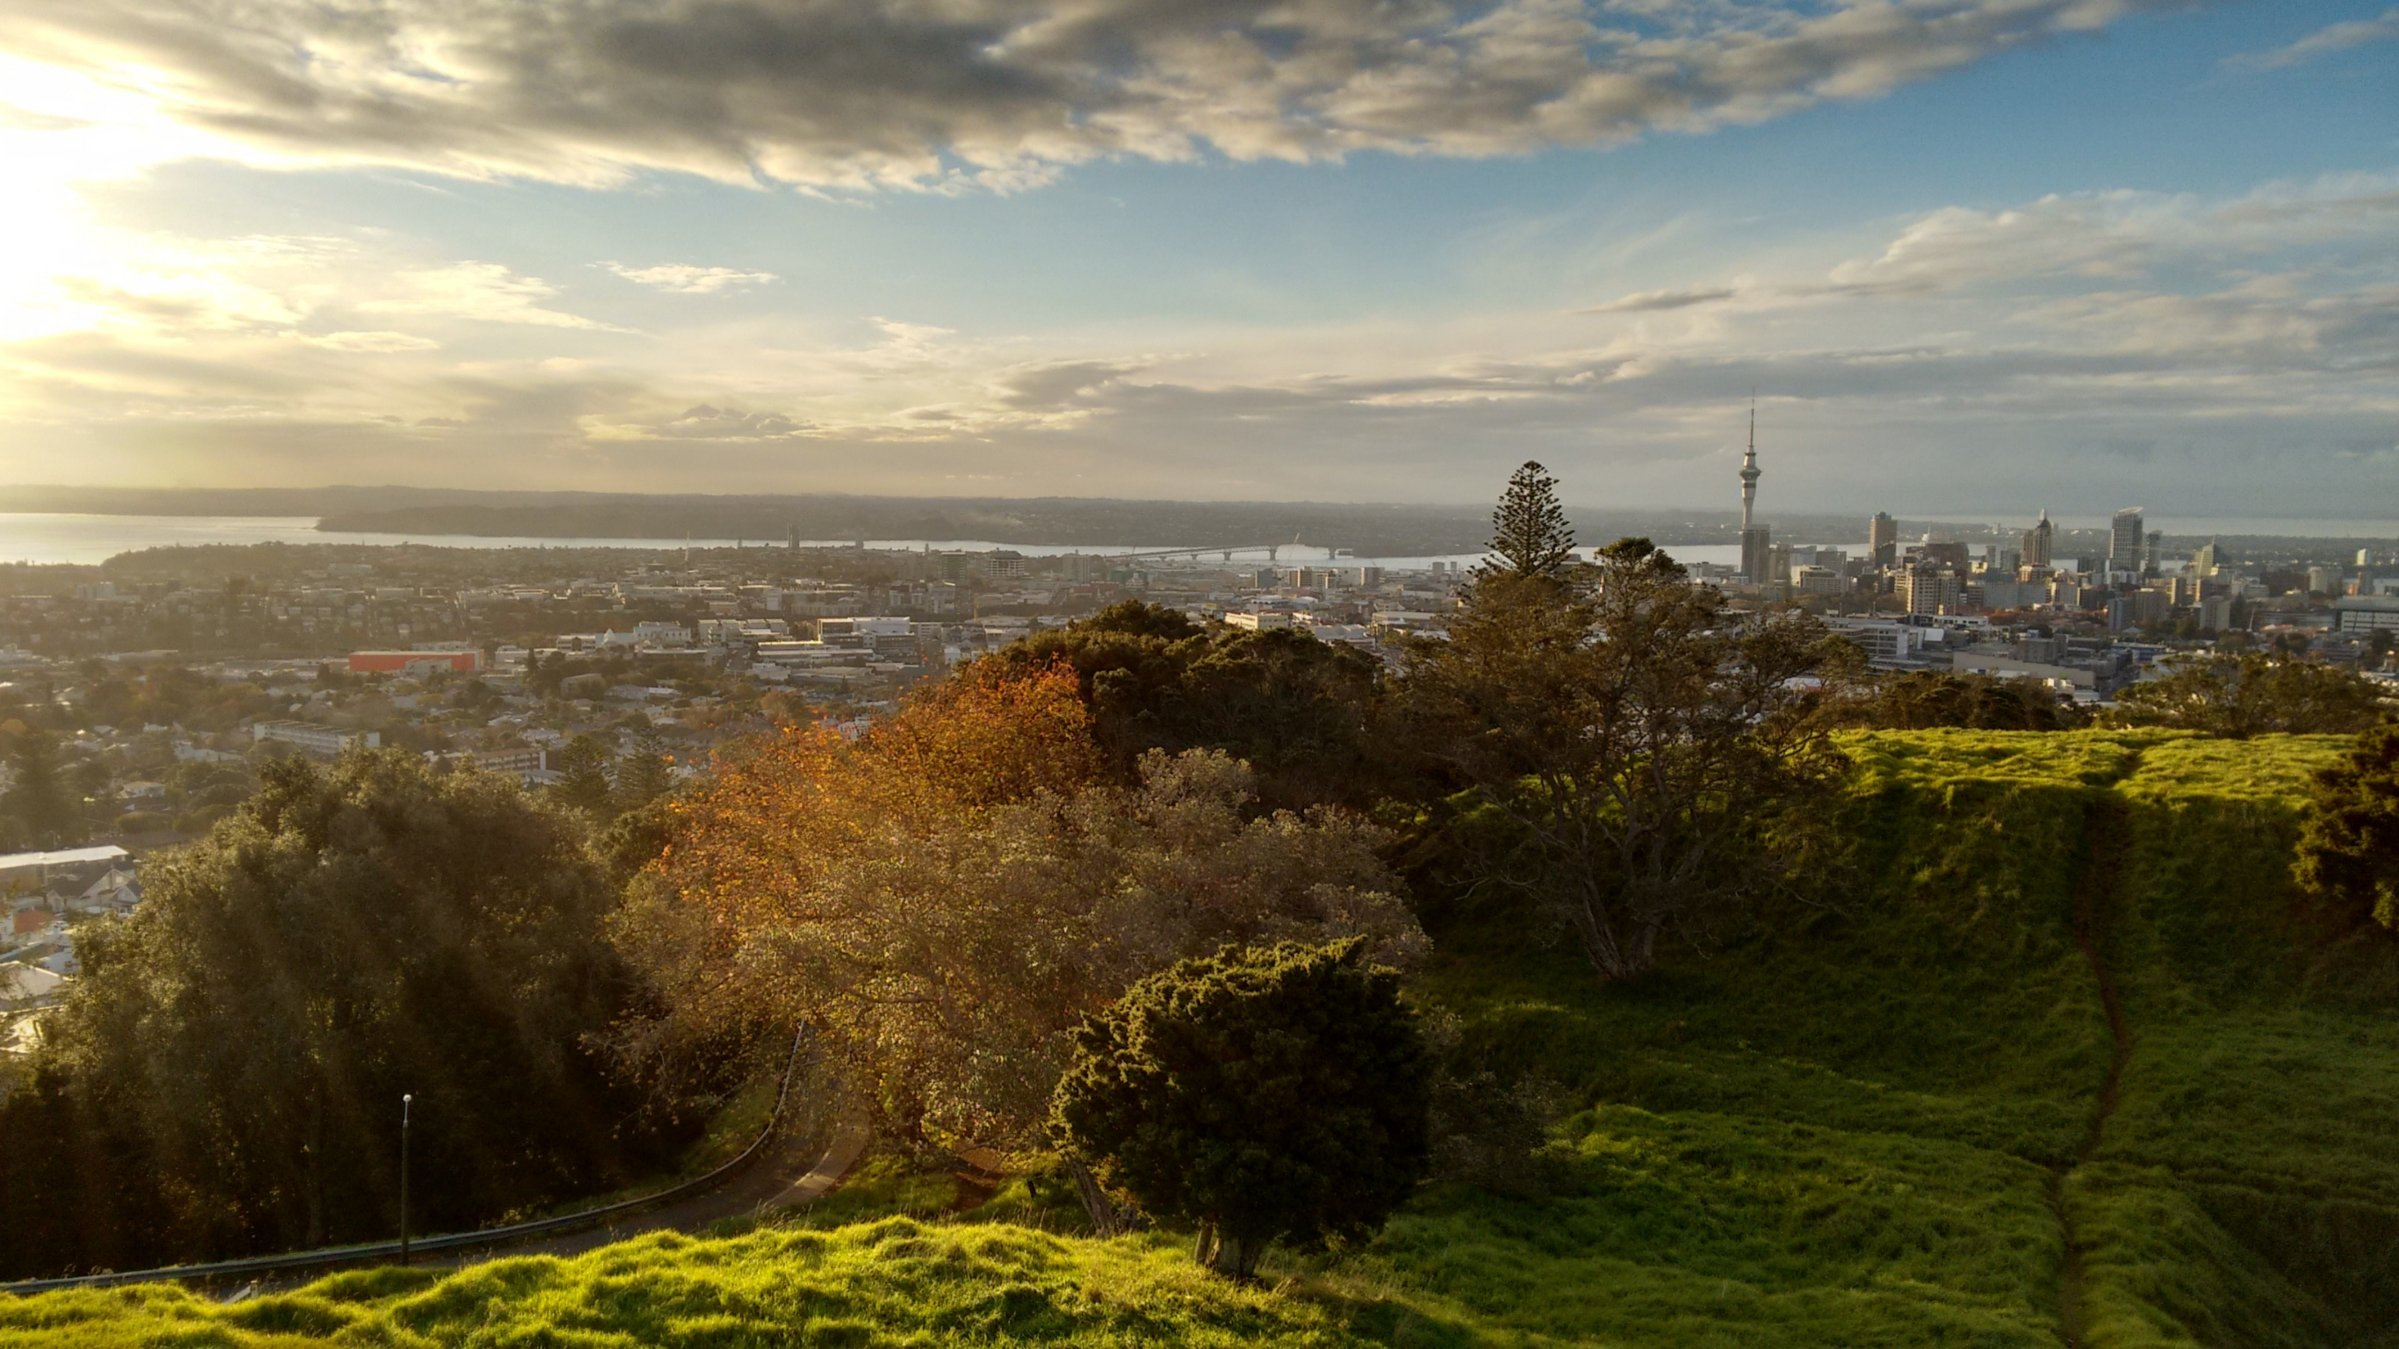 2-Day Flavours of Auckland - New Zealand Itinerary